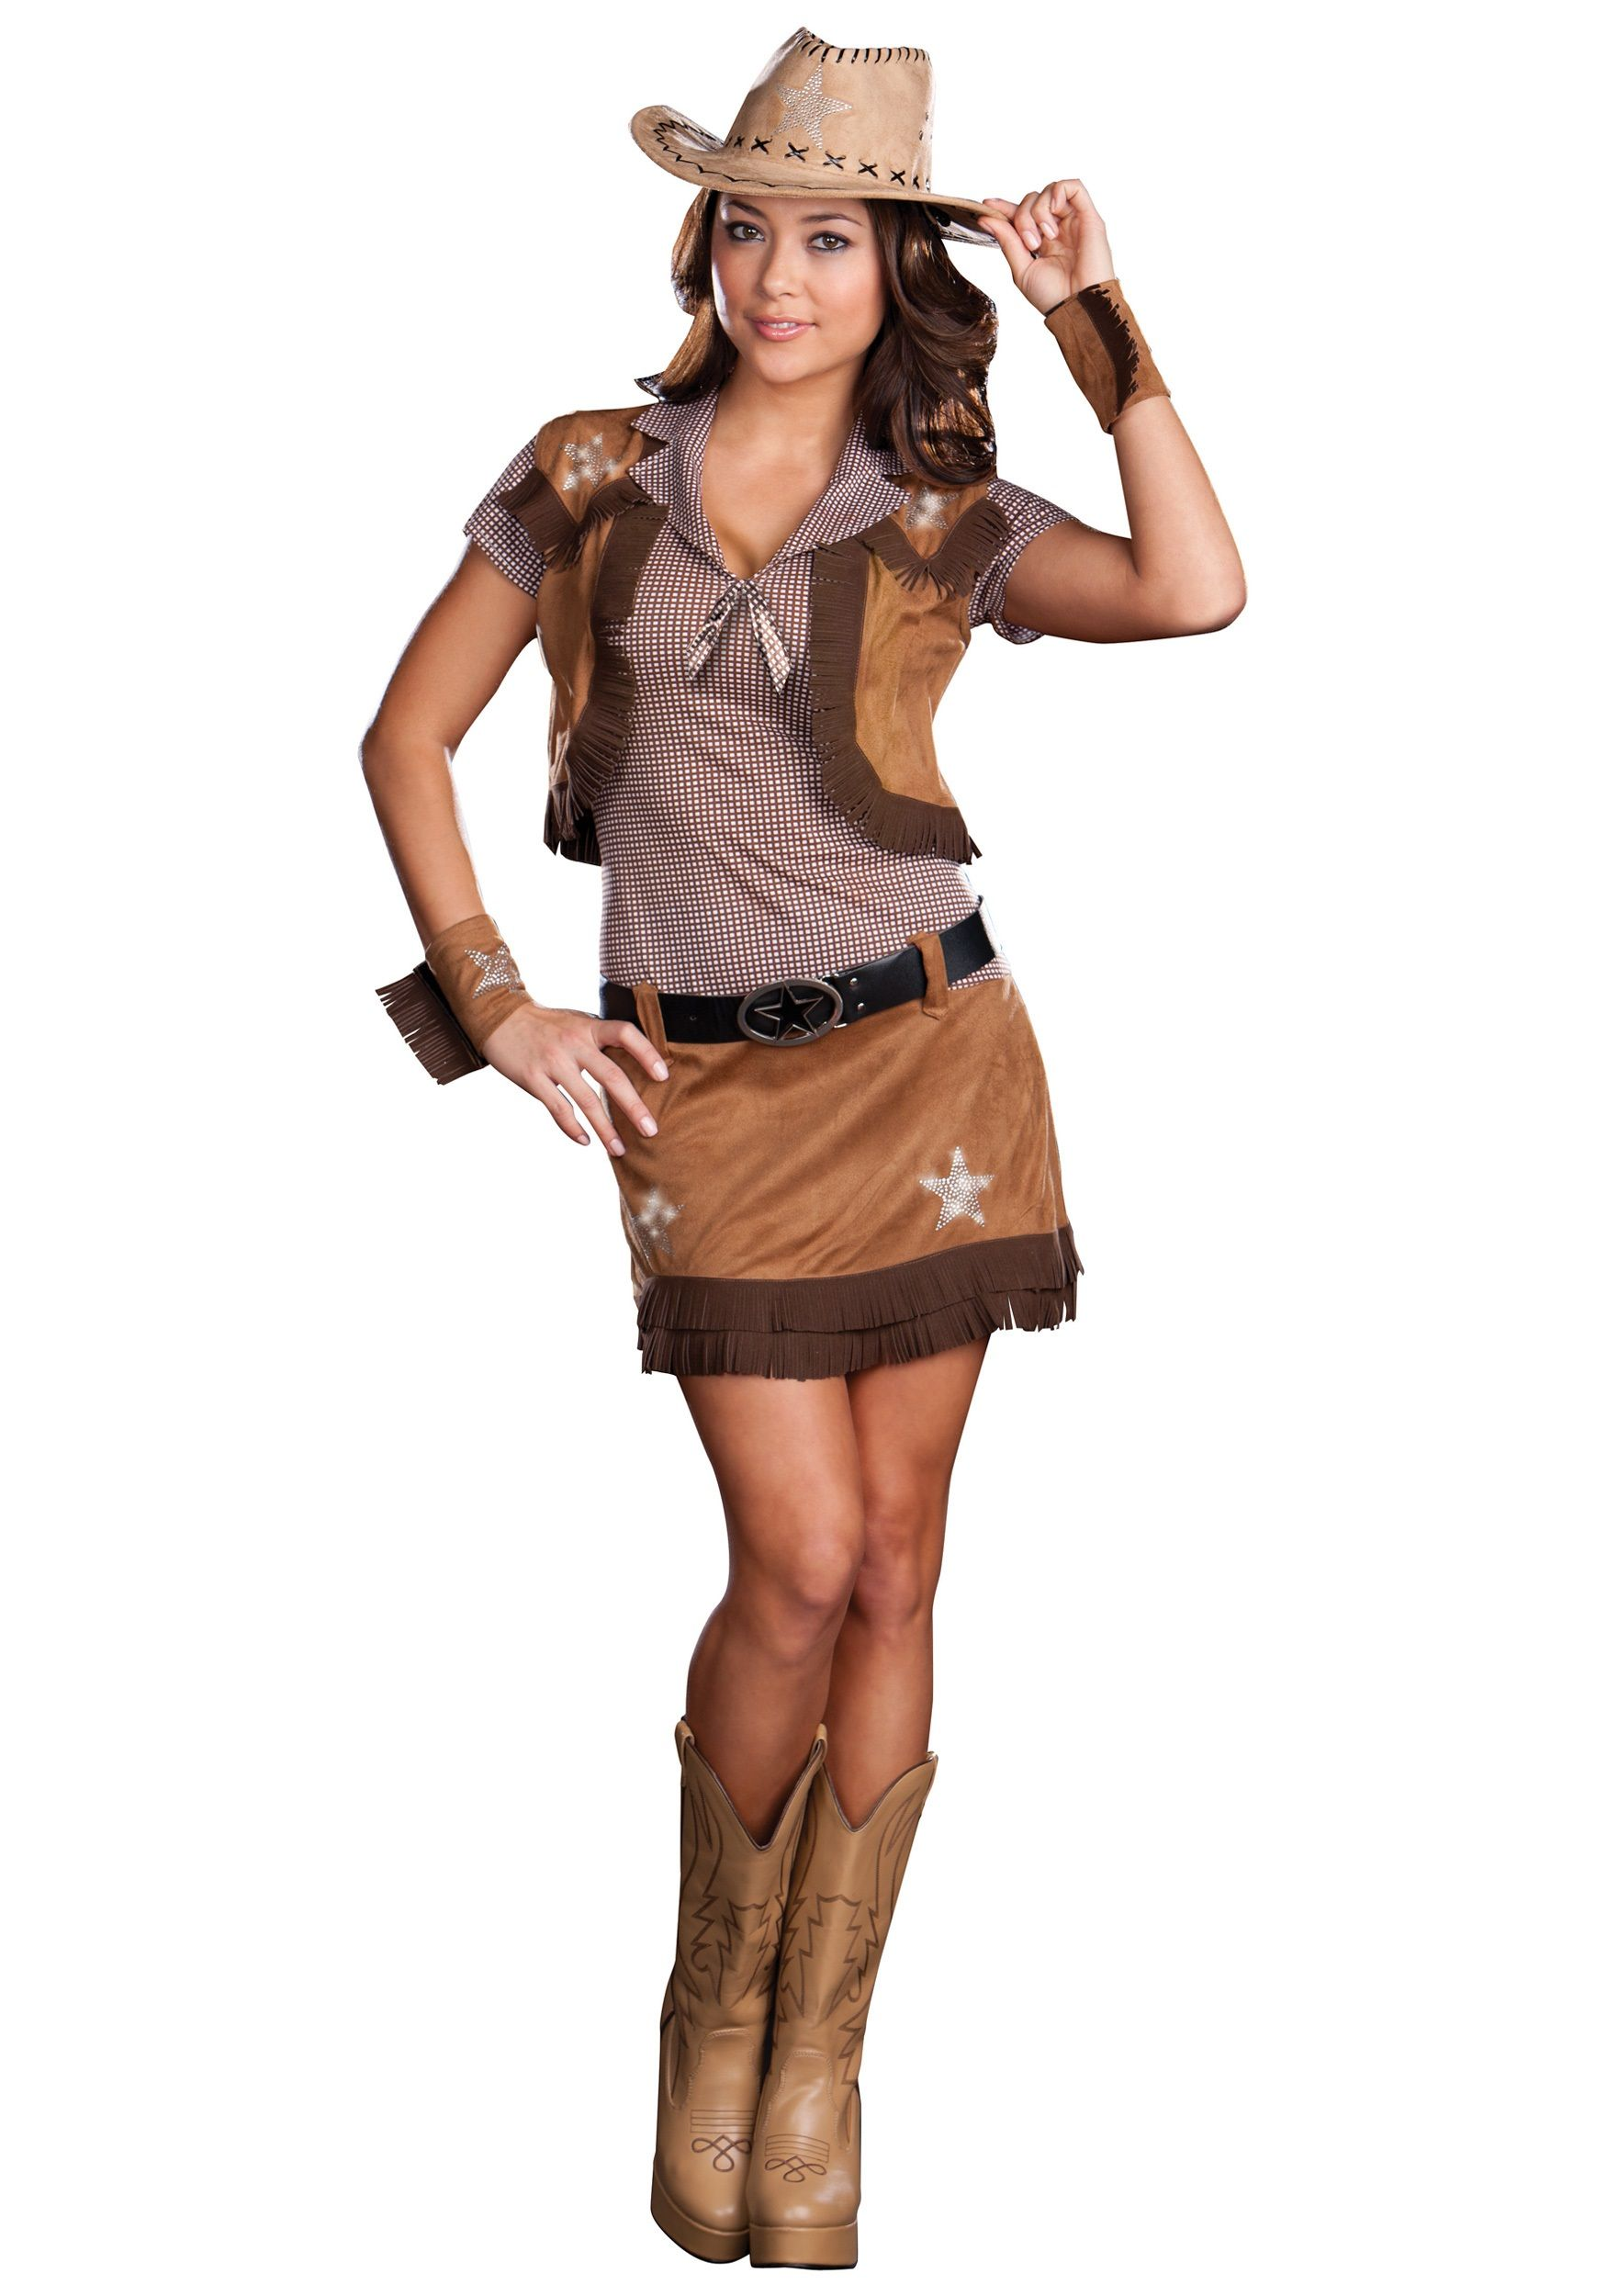 Home ladies costumes rodeo gal costume - Sexy Rodeo Cowgirl Costume Womens Cowgirl Costumes For Halloween You Are Going To Have Fun Dressed Up In This Cute Little Number